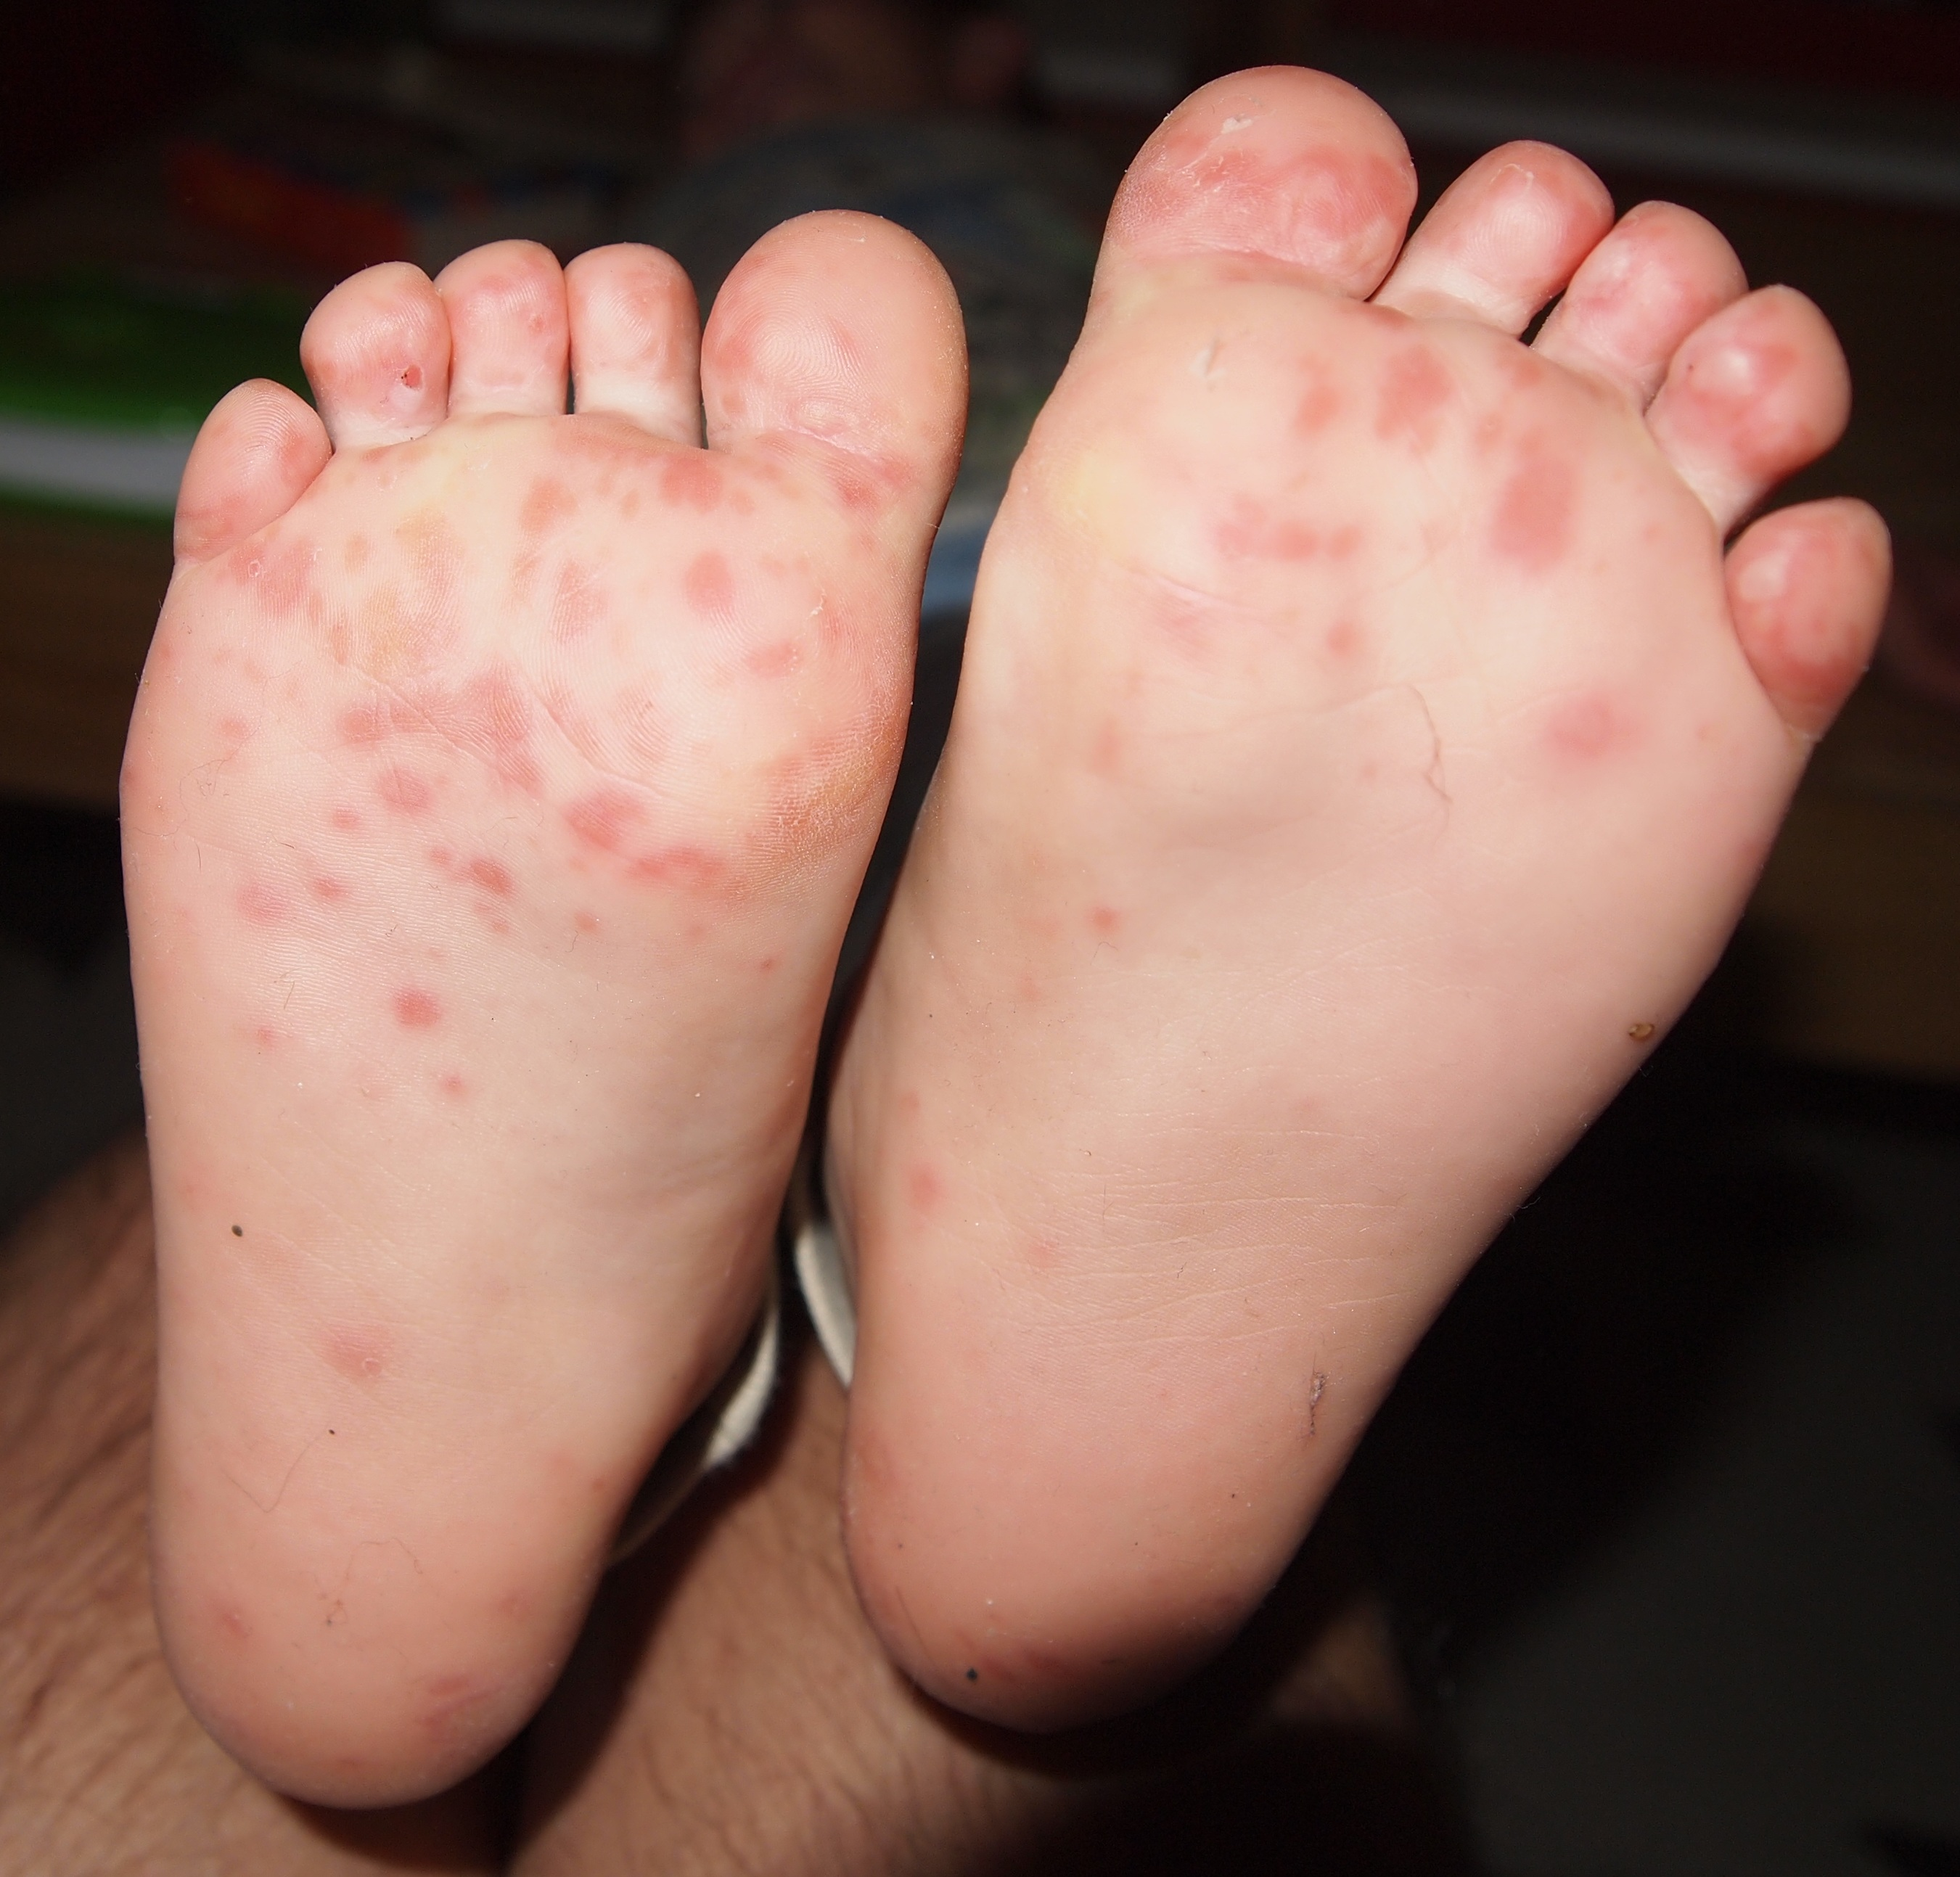 Foot hand mouth pictures and disease